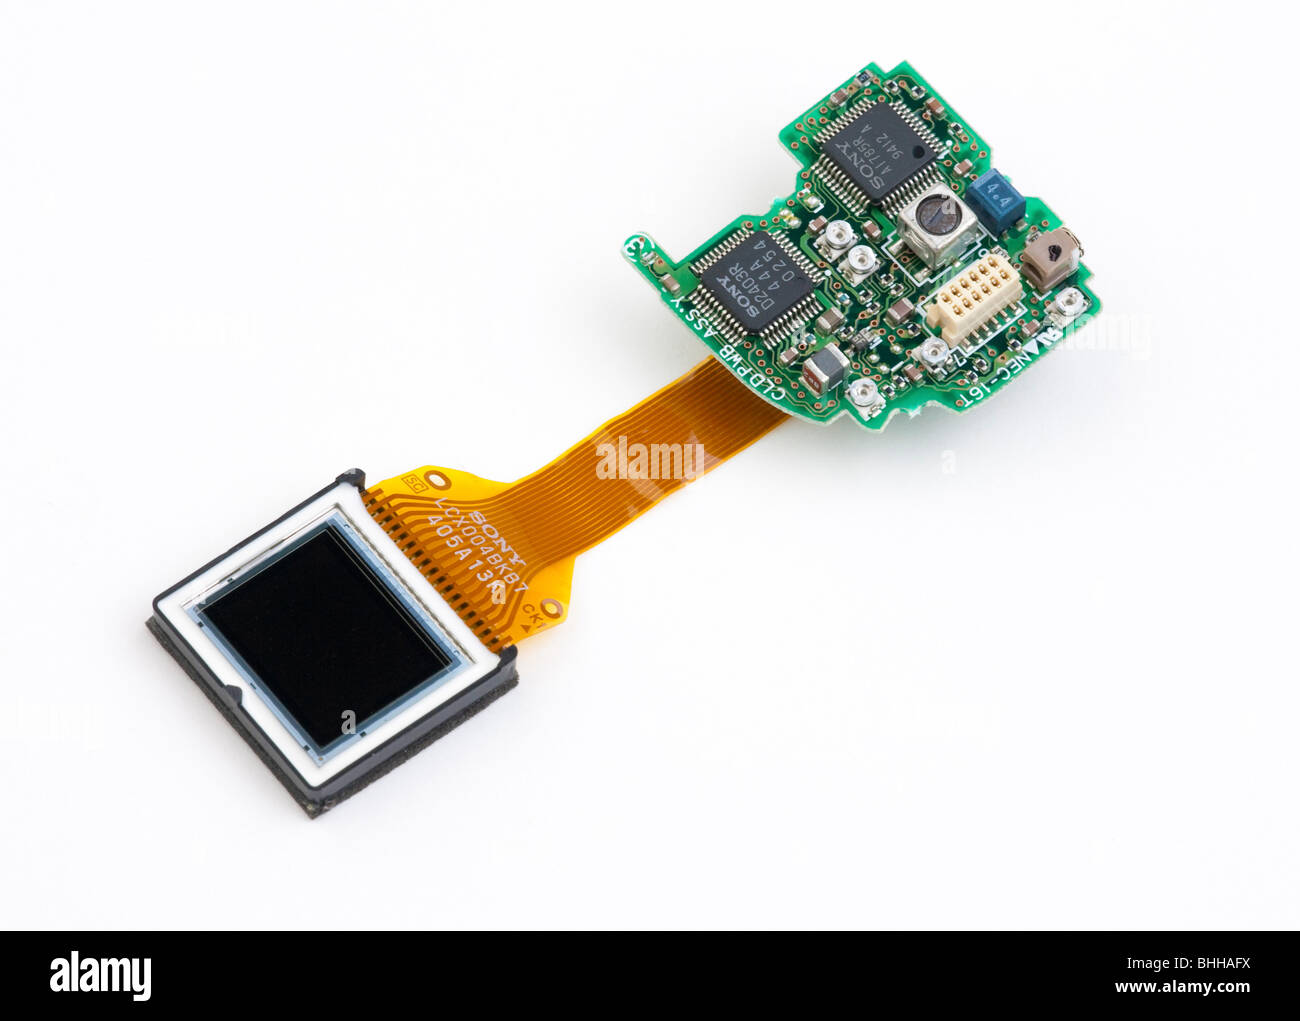 0.7' size micro colour display LCD screen - Stock Image